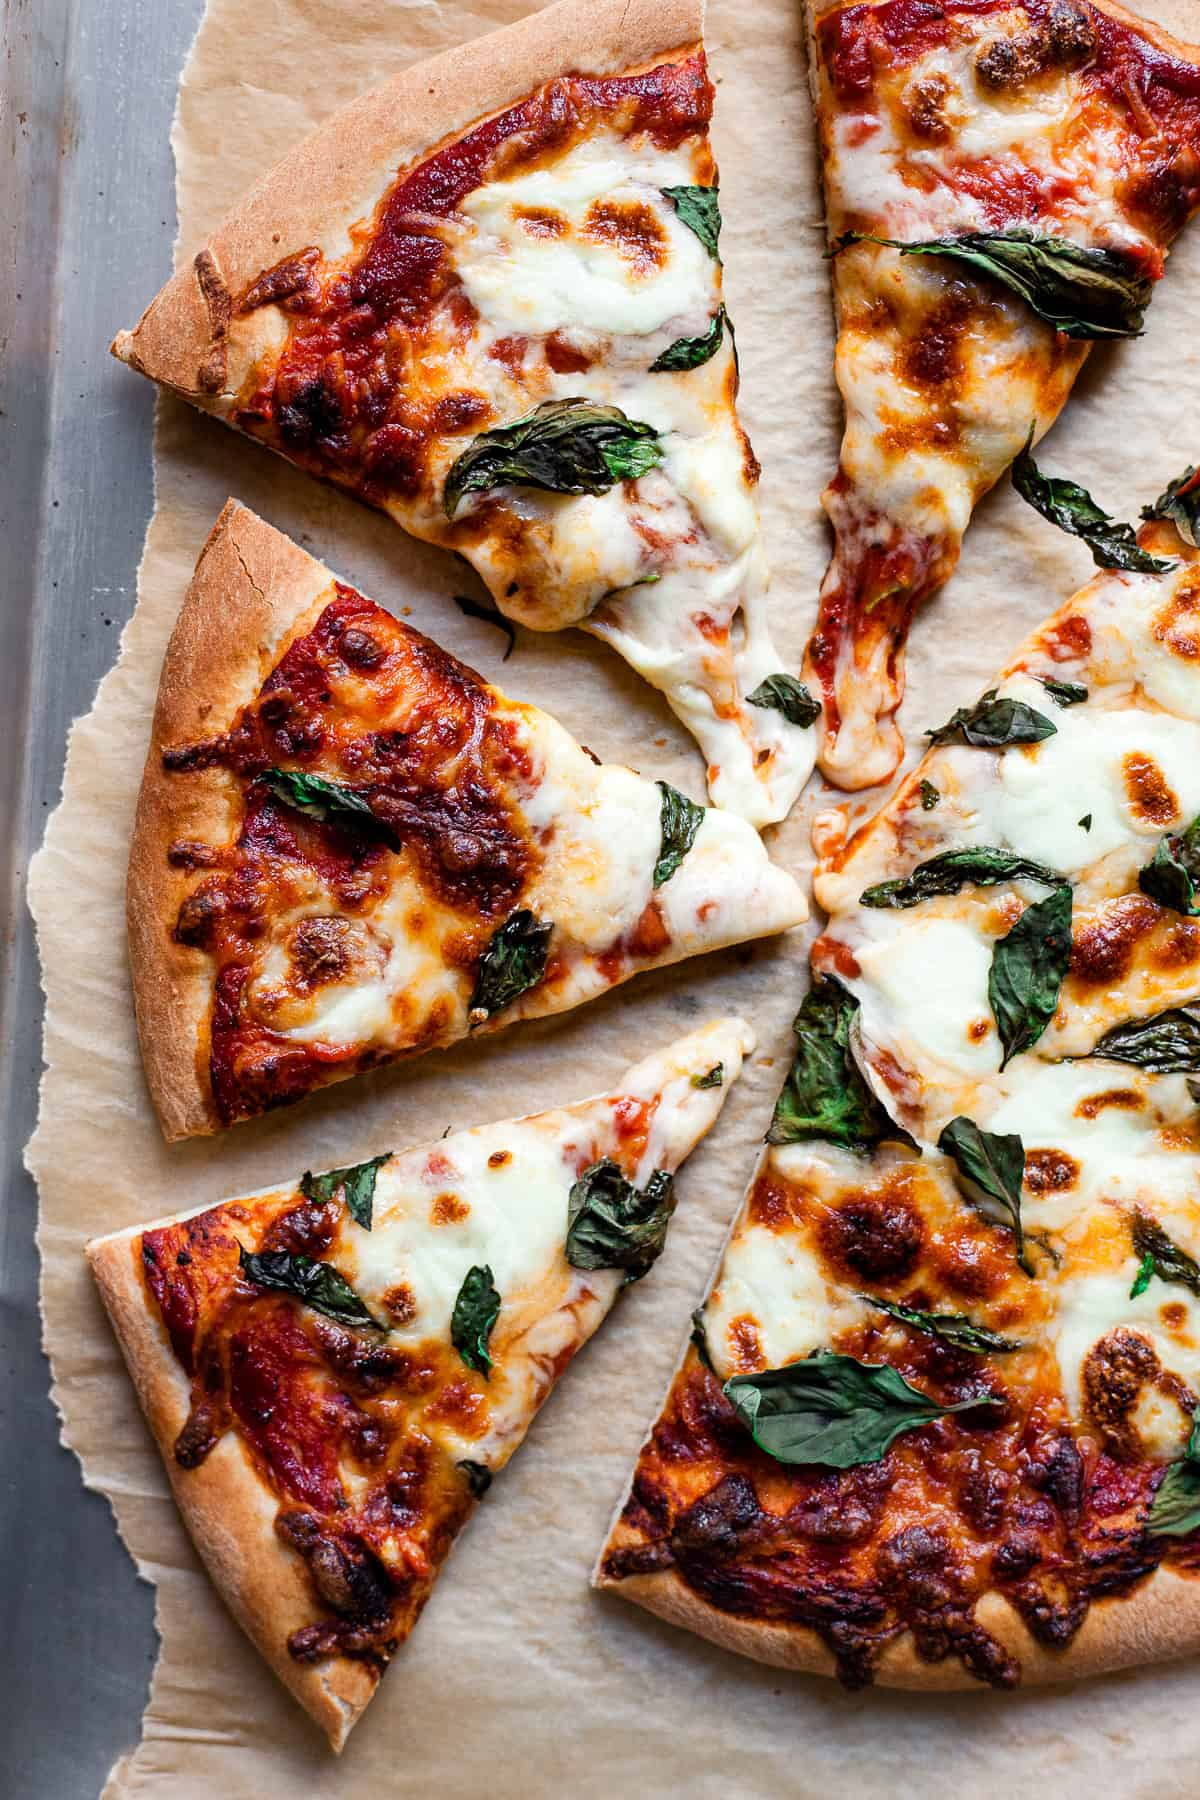 Margherita pizza slices on a piece of baking paper.